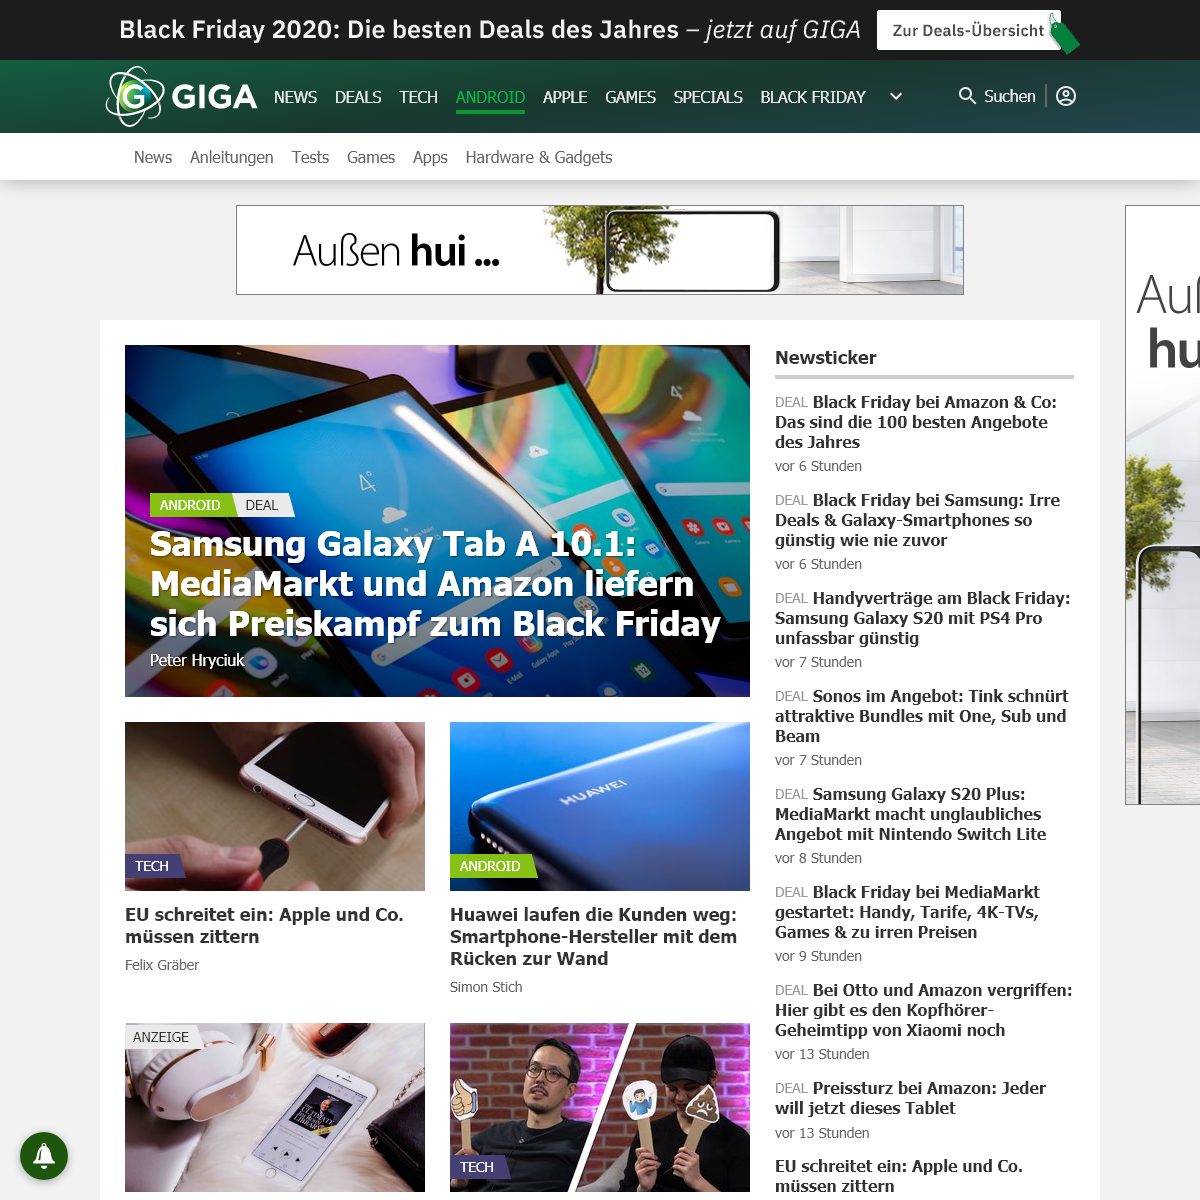 GIGA ANDROID - News, Deals, Tests & Tipps